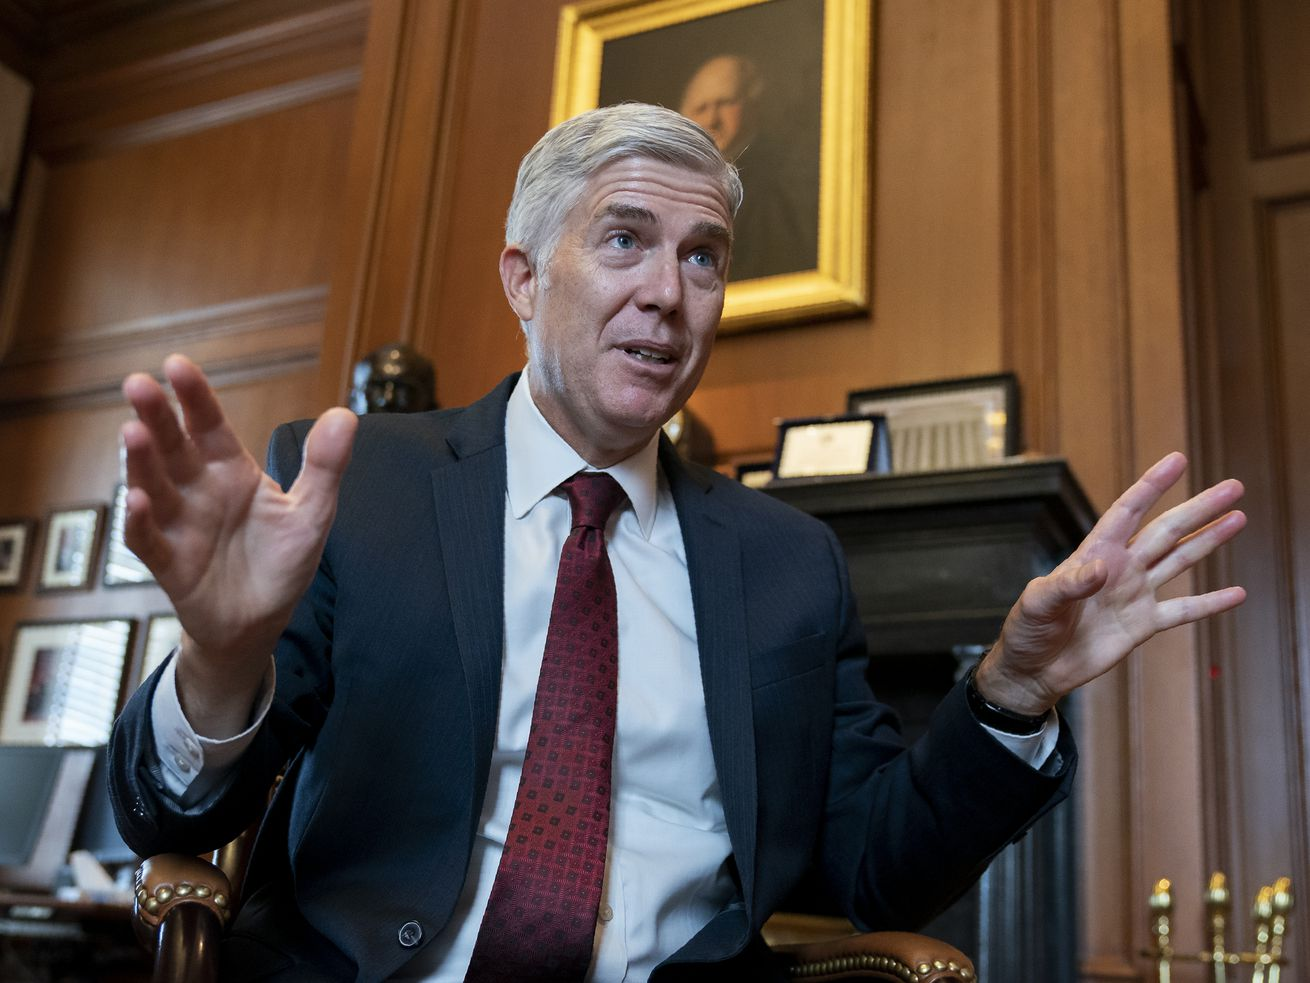 In our opinion: Justice Gorsuch, Benjamin Franklin and a civics lesson for the country